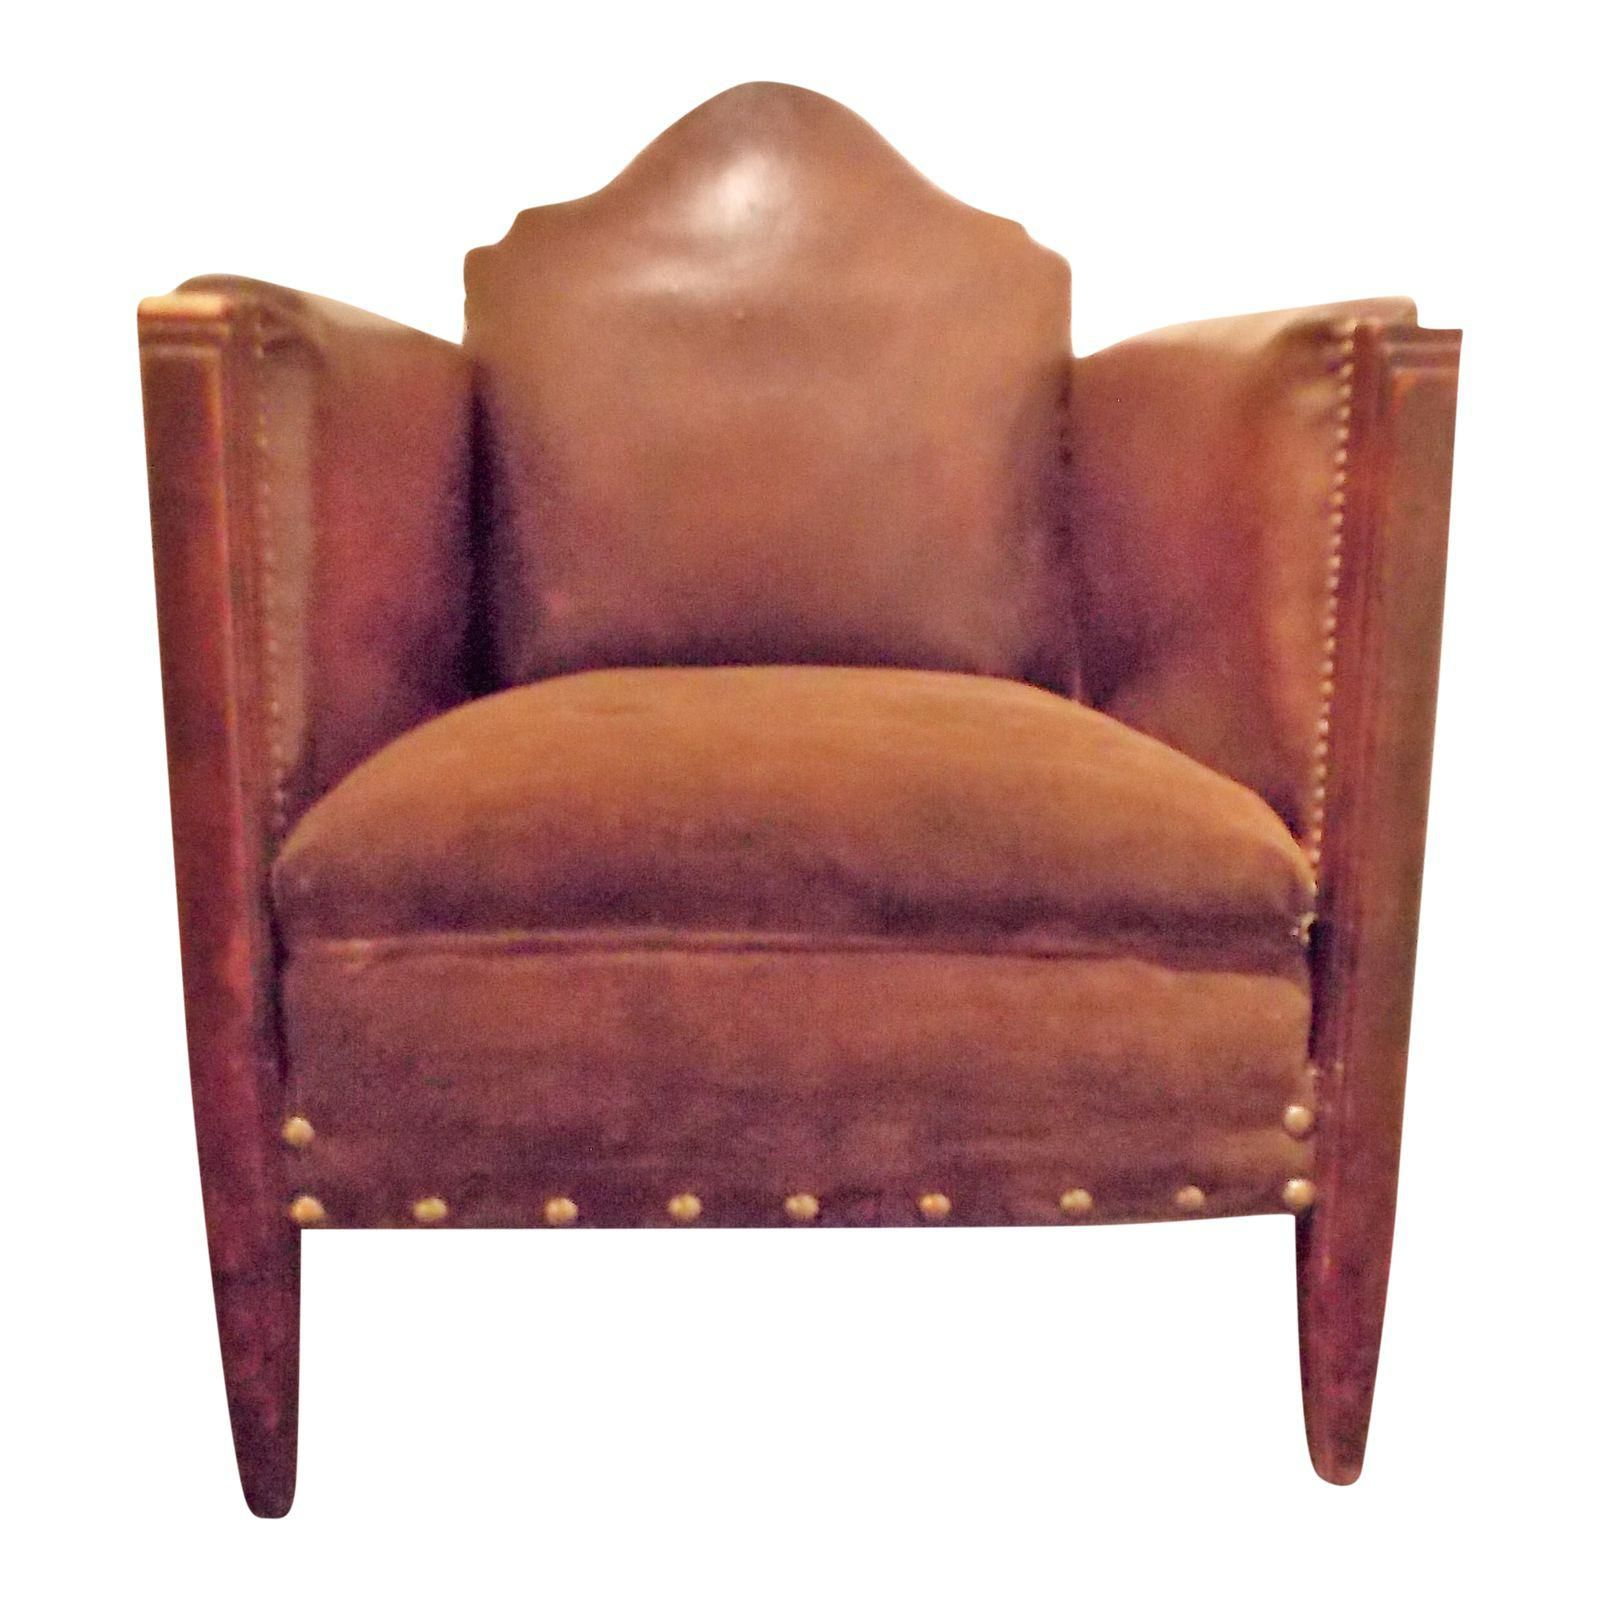 Vintage French Leather Club Chair - Image 1 of 8